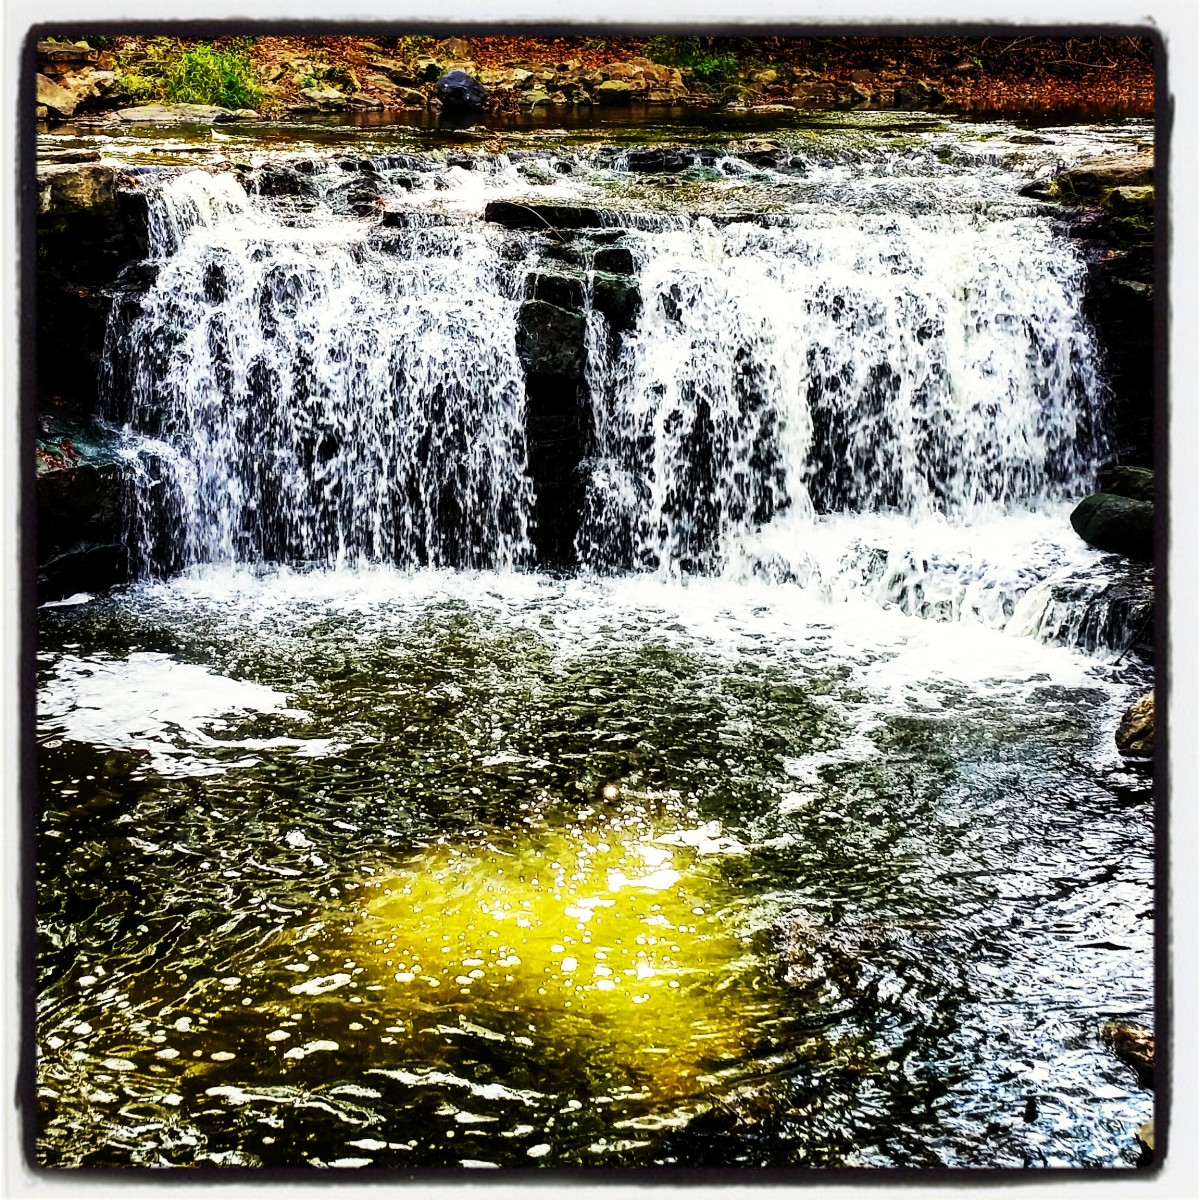 Upper Falls - I love the Heart Reflection. God speaks through all that He has made